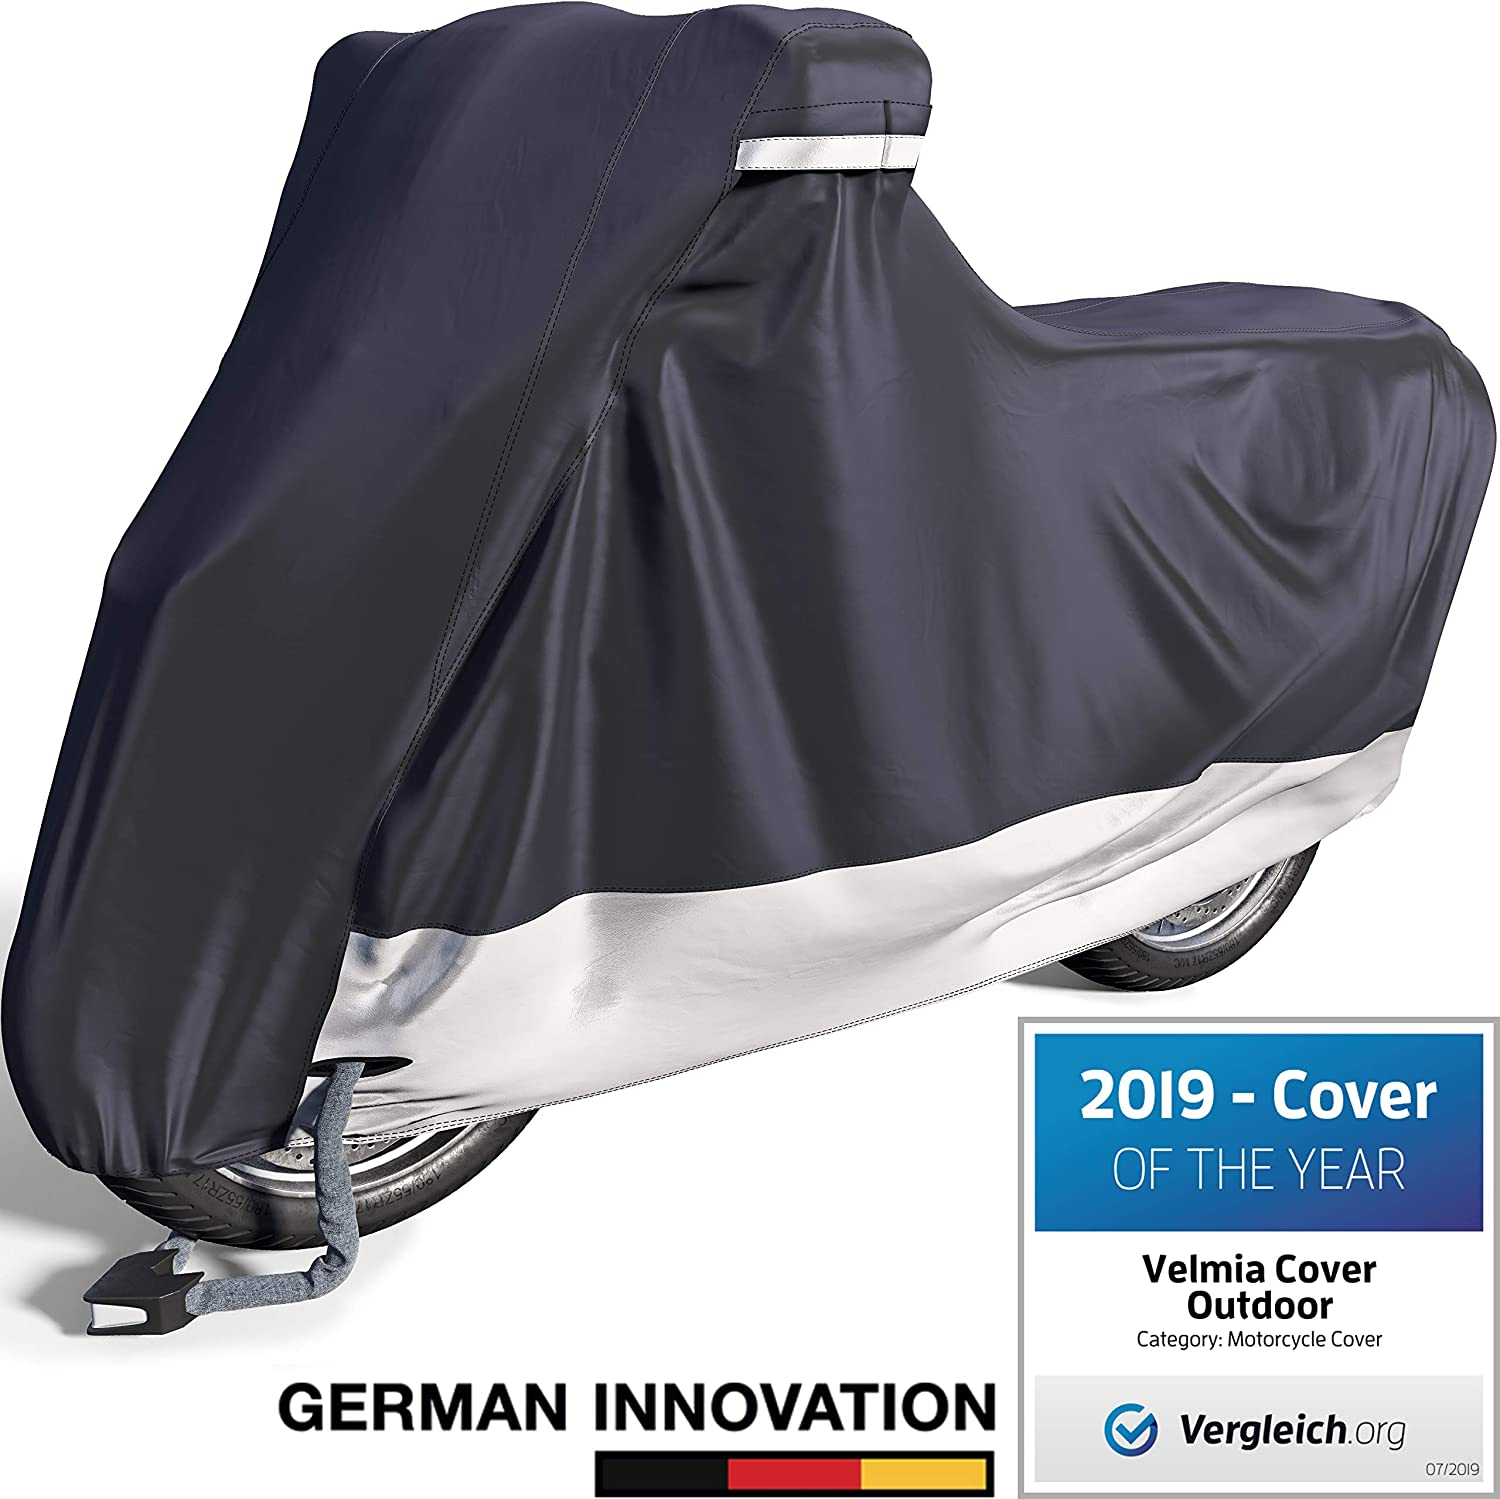 Velmia Motorcycle Cover Waterproof Outdoor & Indoor [XX-Large] Heavy Duty Premium Bike Cover, Moped Cover for Harley Davidson -Scooter Cover heat-resistant, scratch-free & breathable for ideal storage